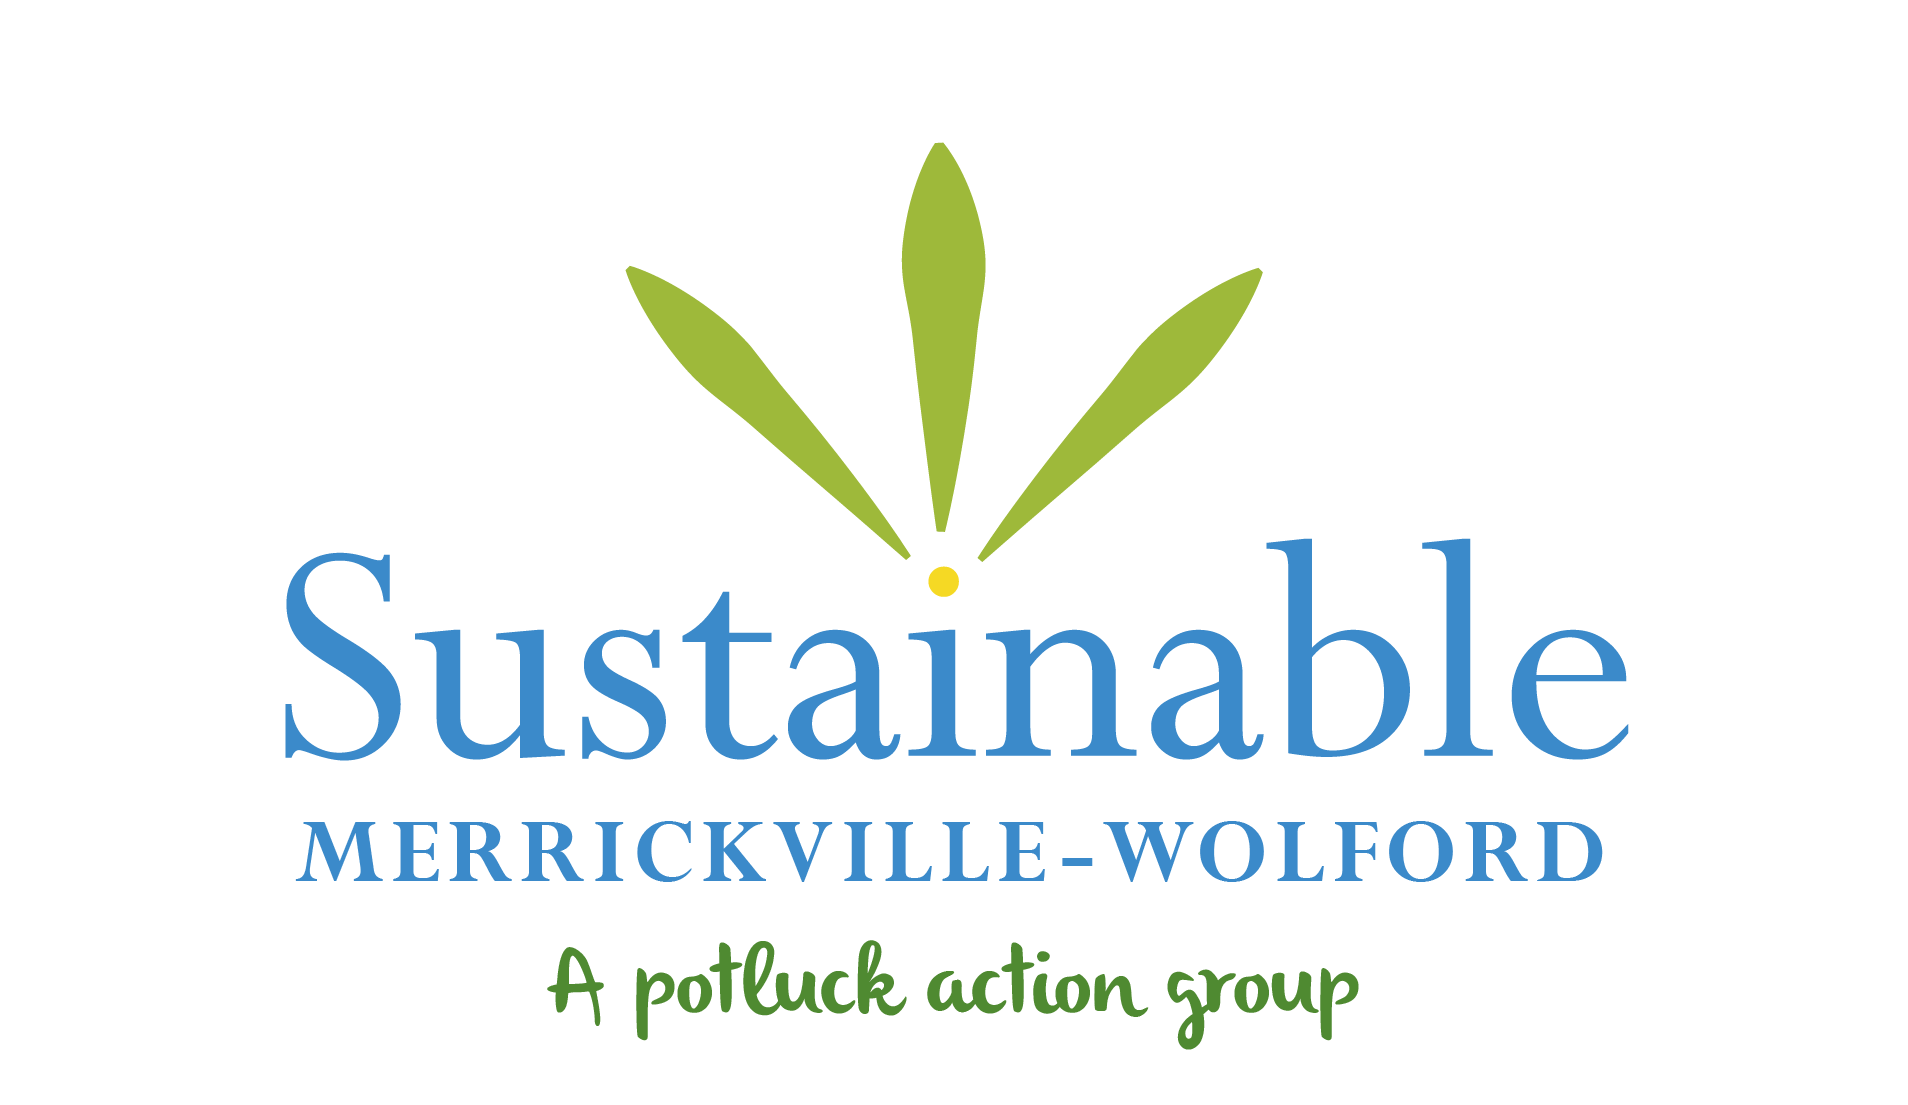 Sustainable Merrickville-Wolford